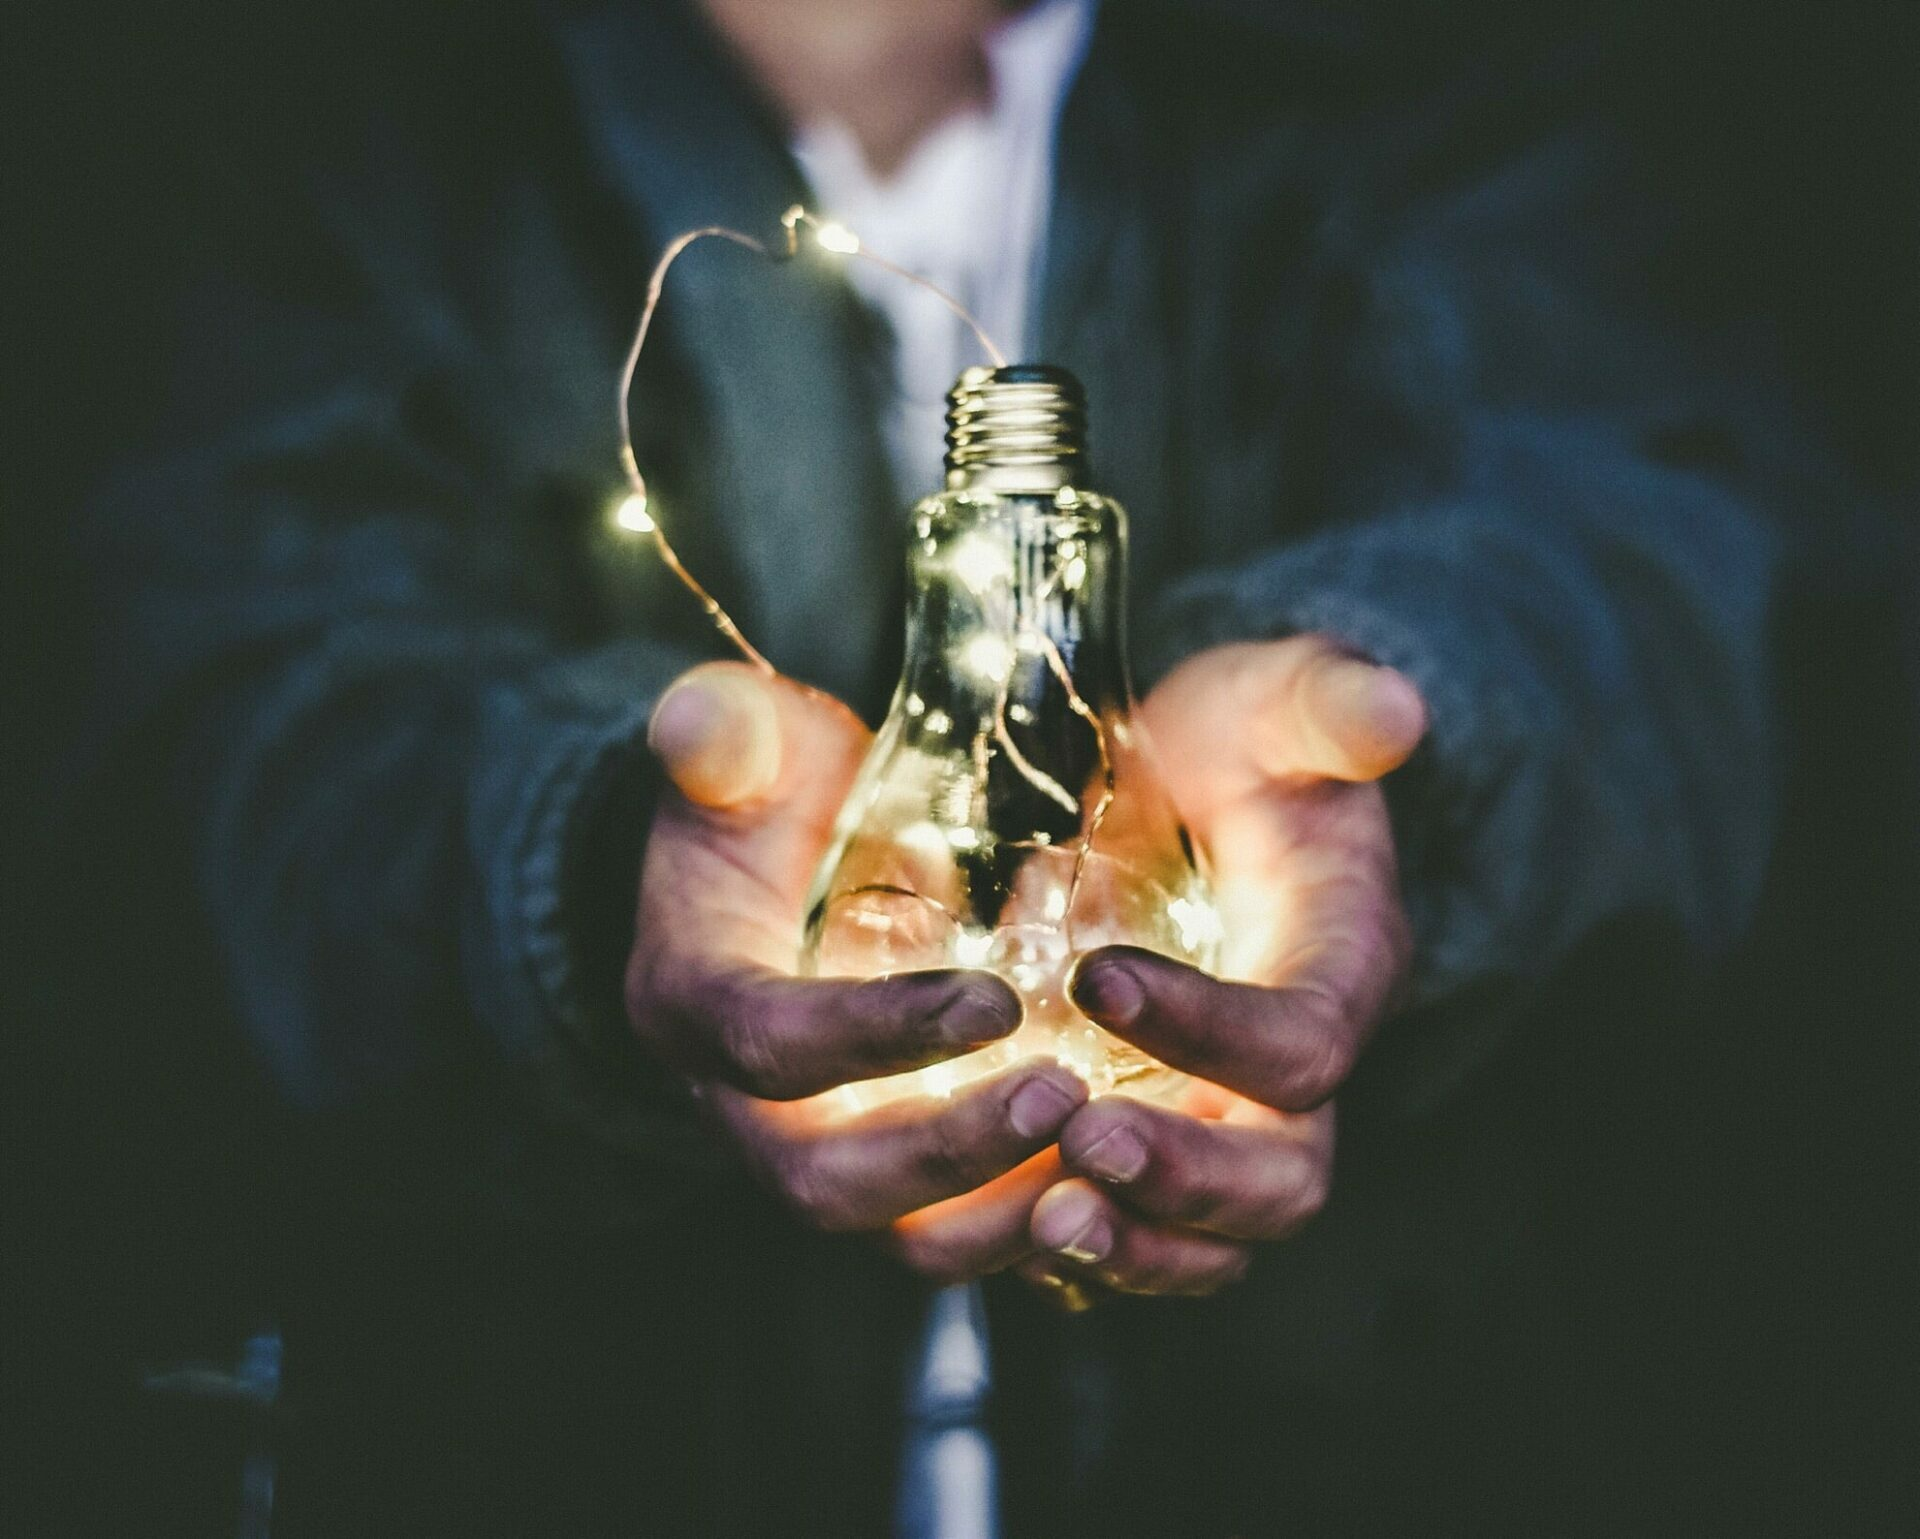 Glowing bulb in the hands of a man